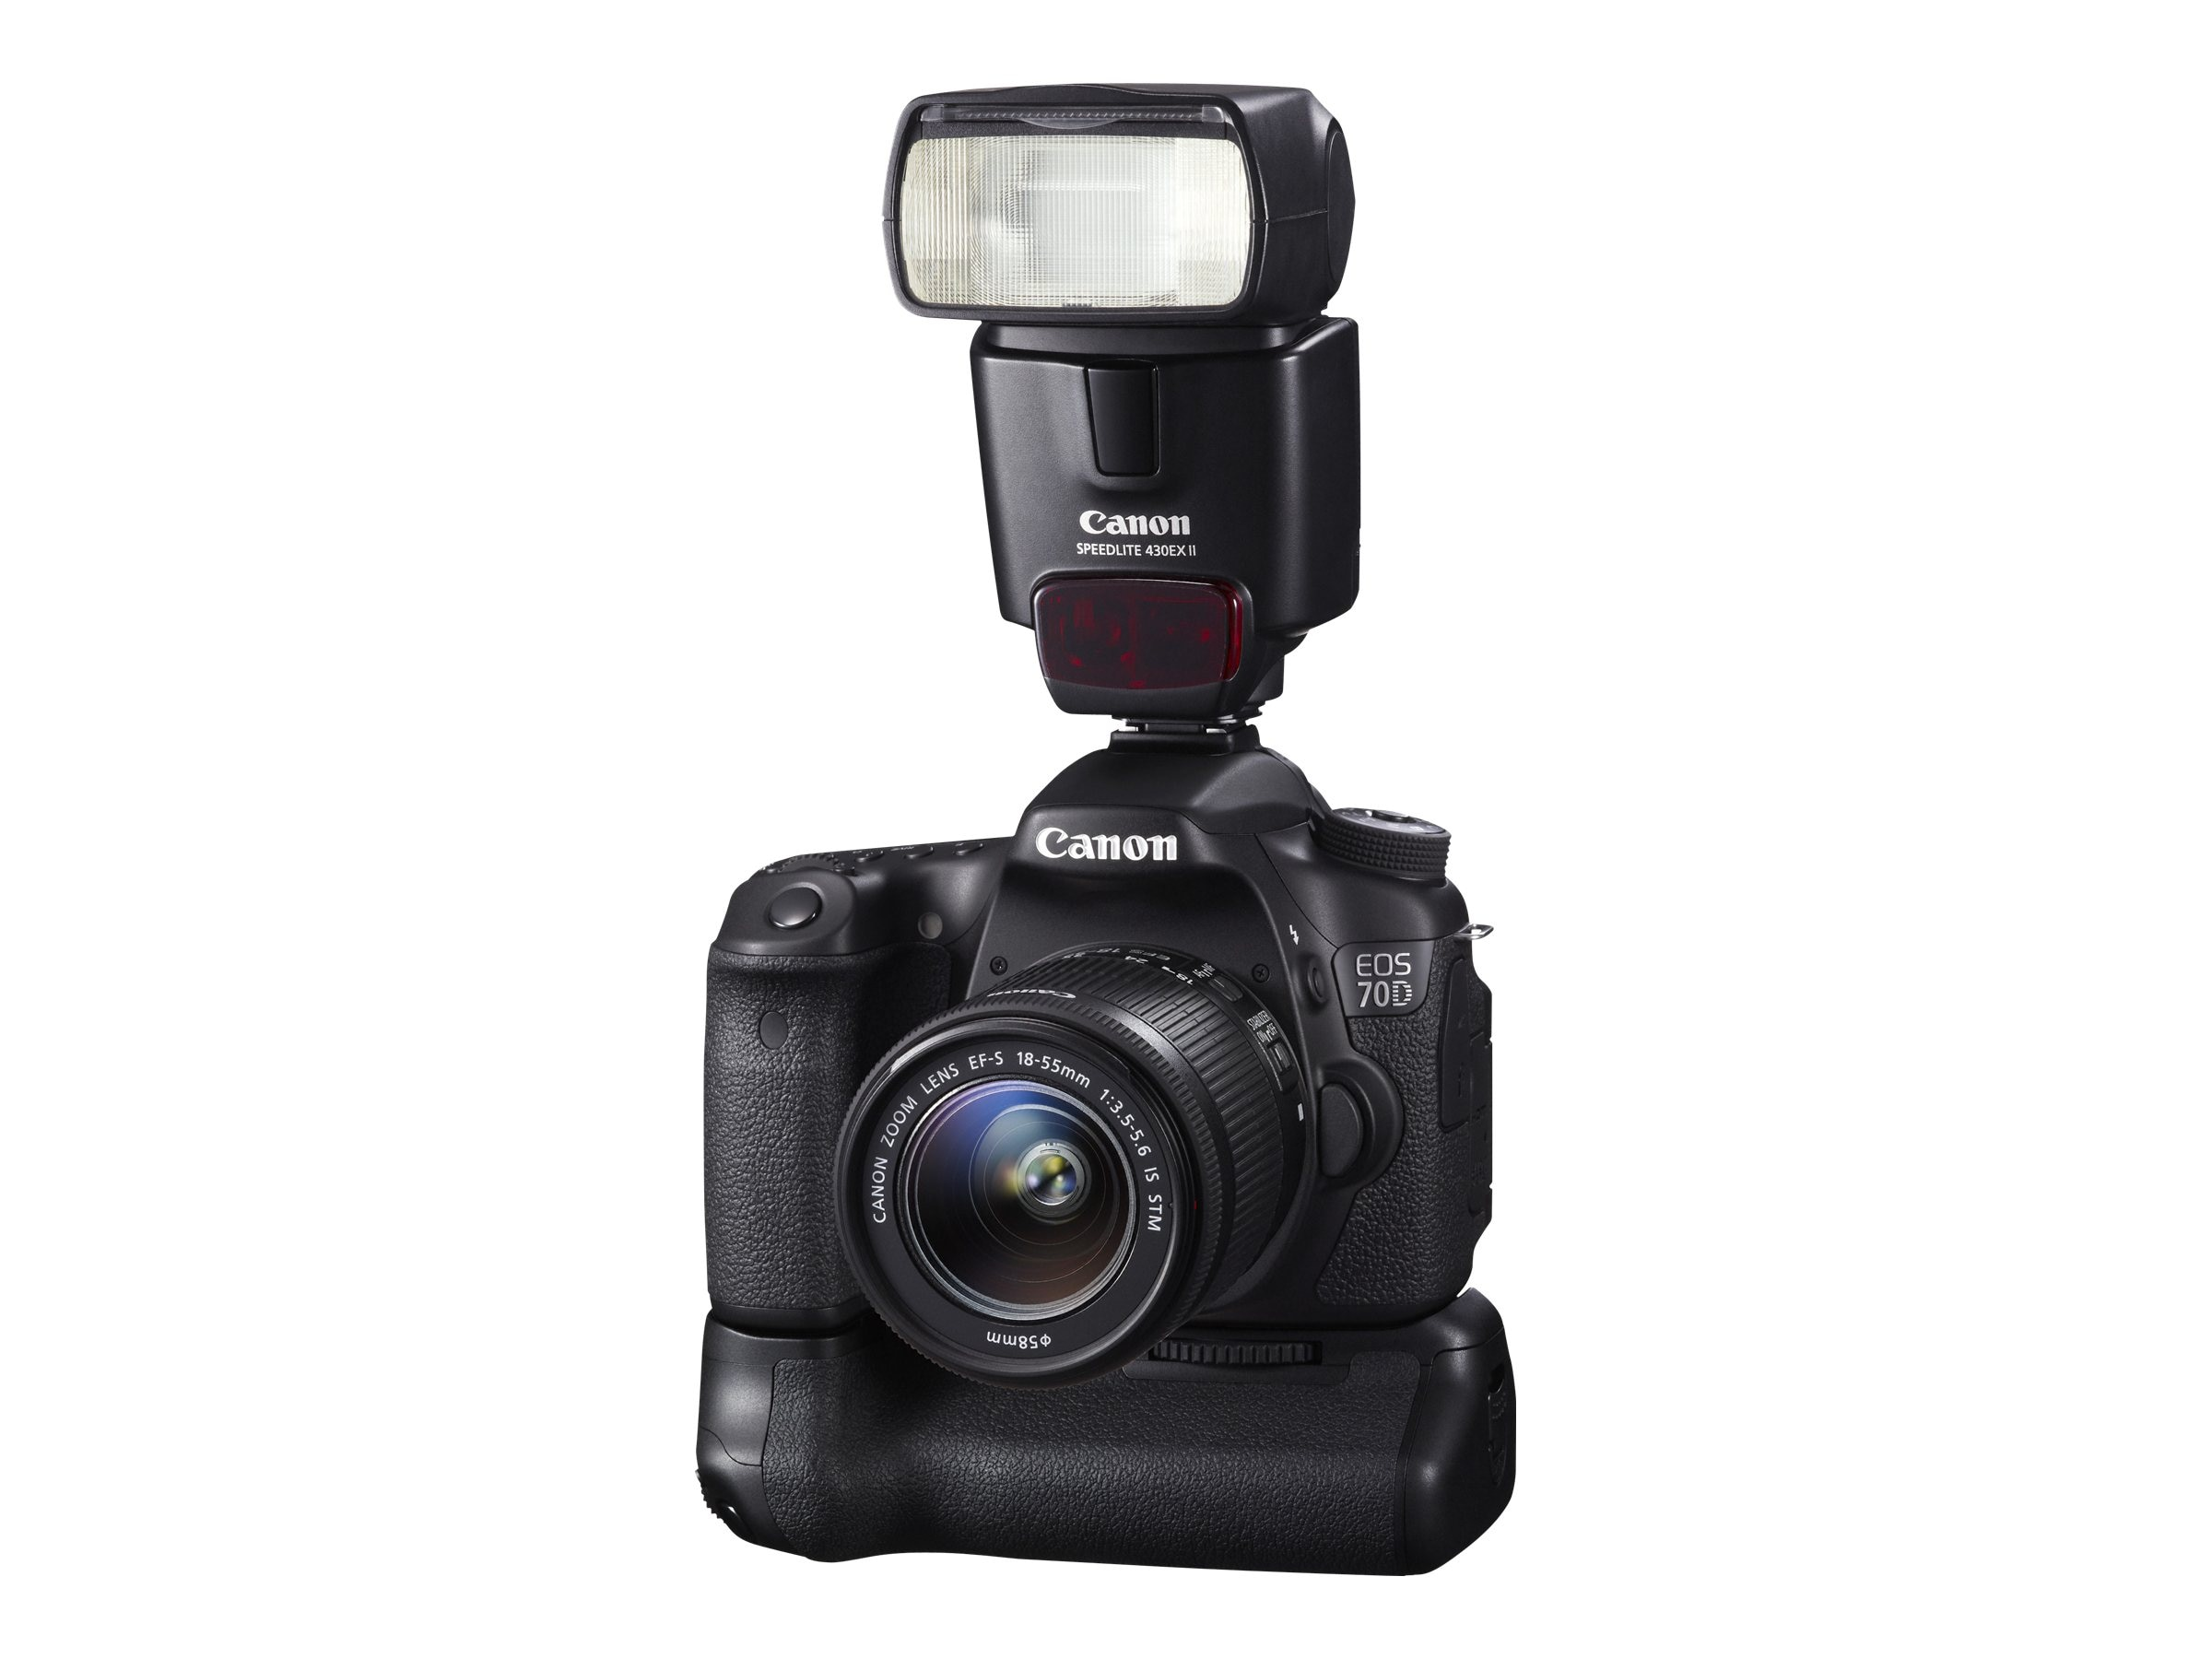 Canon EOS 70D DSLR Camera with 18-55mm Lens